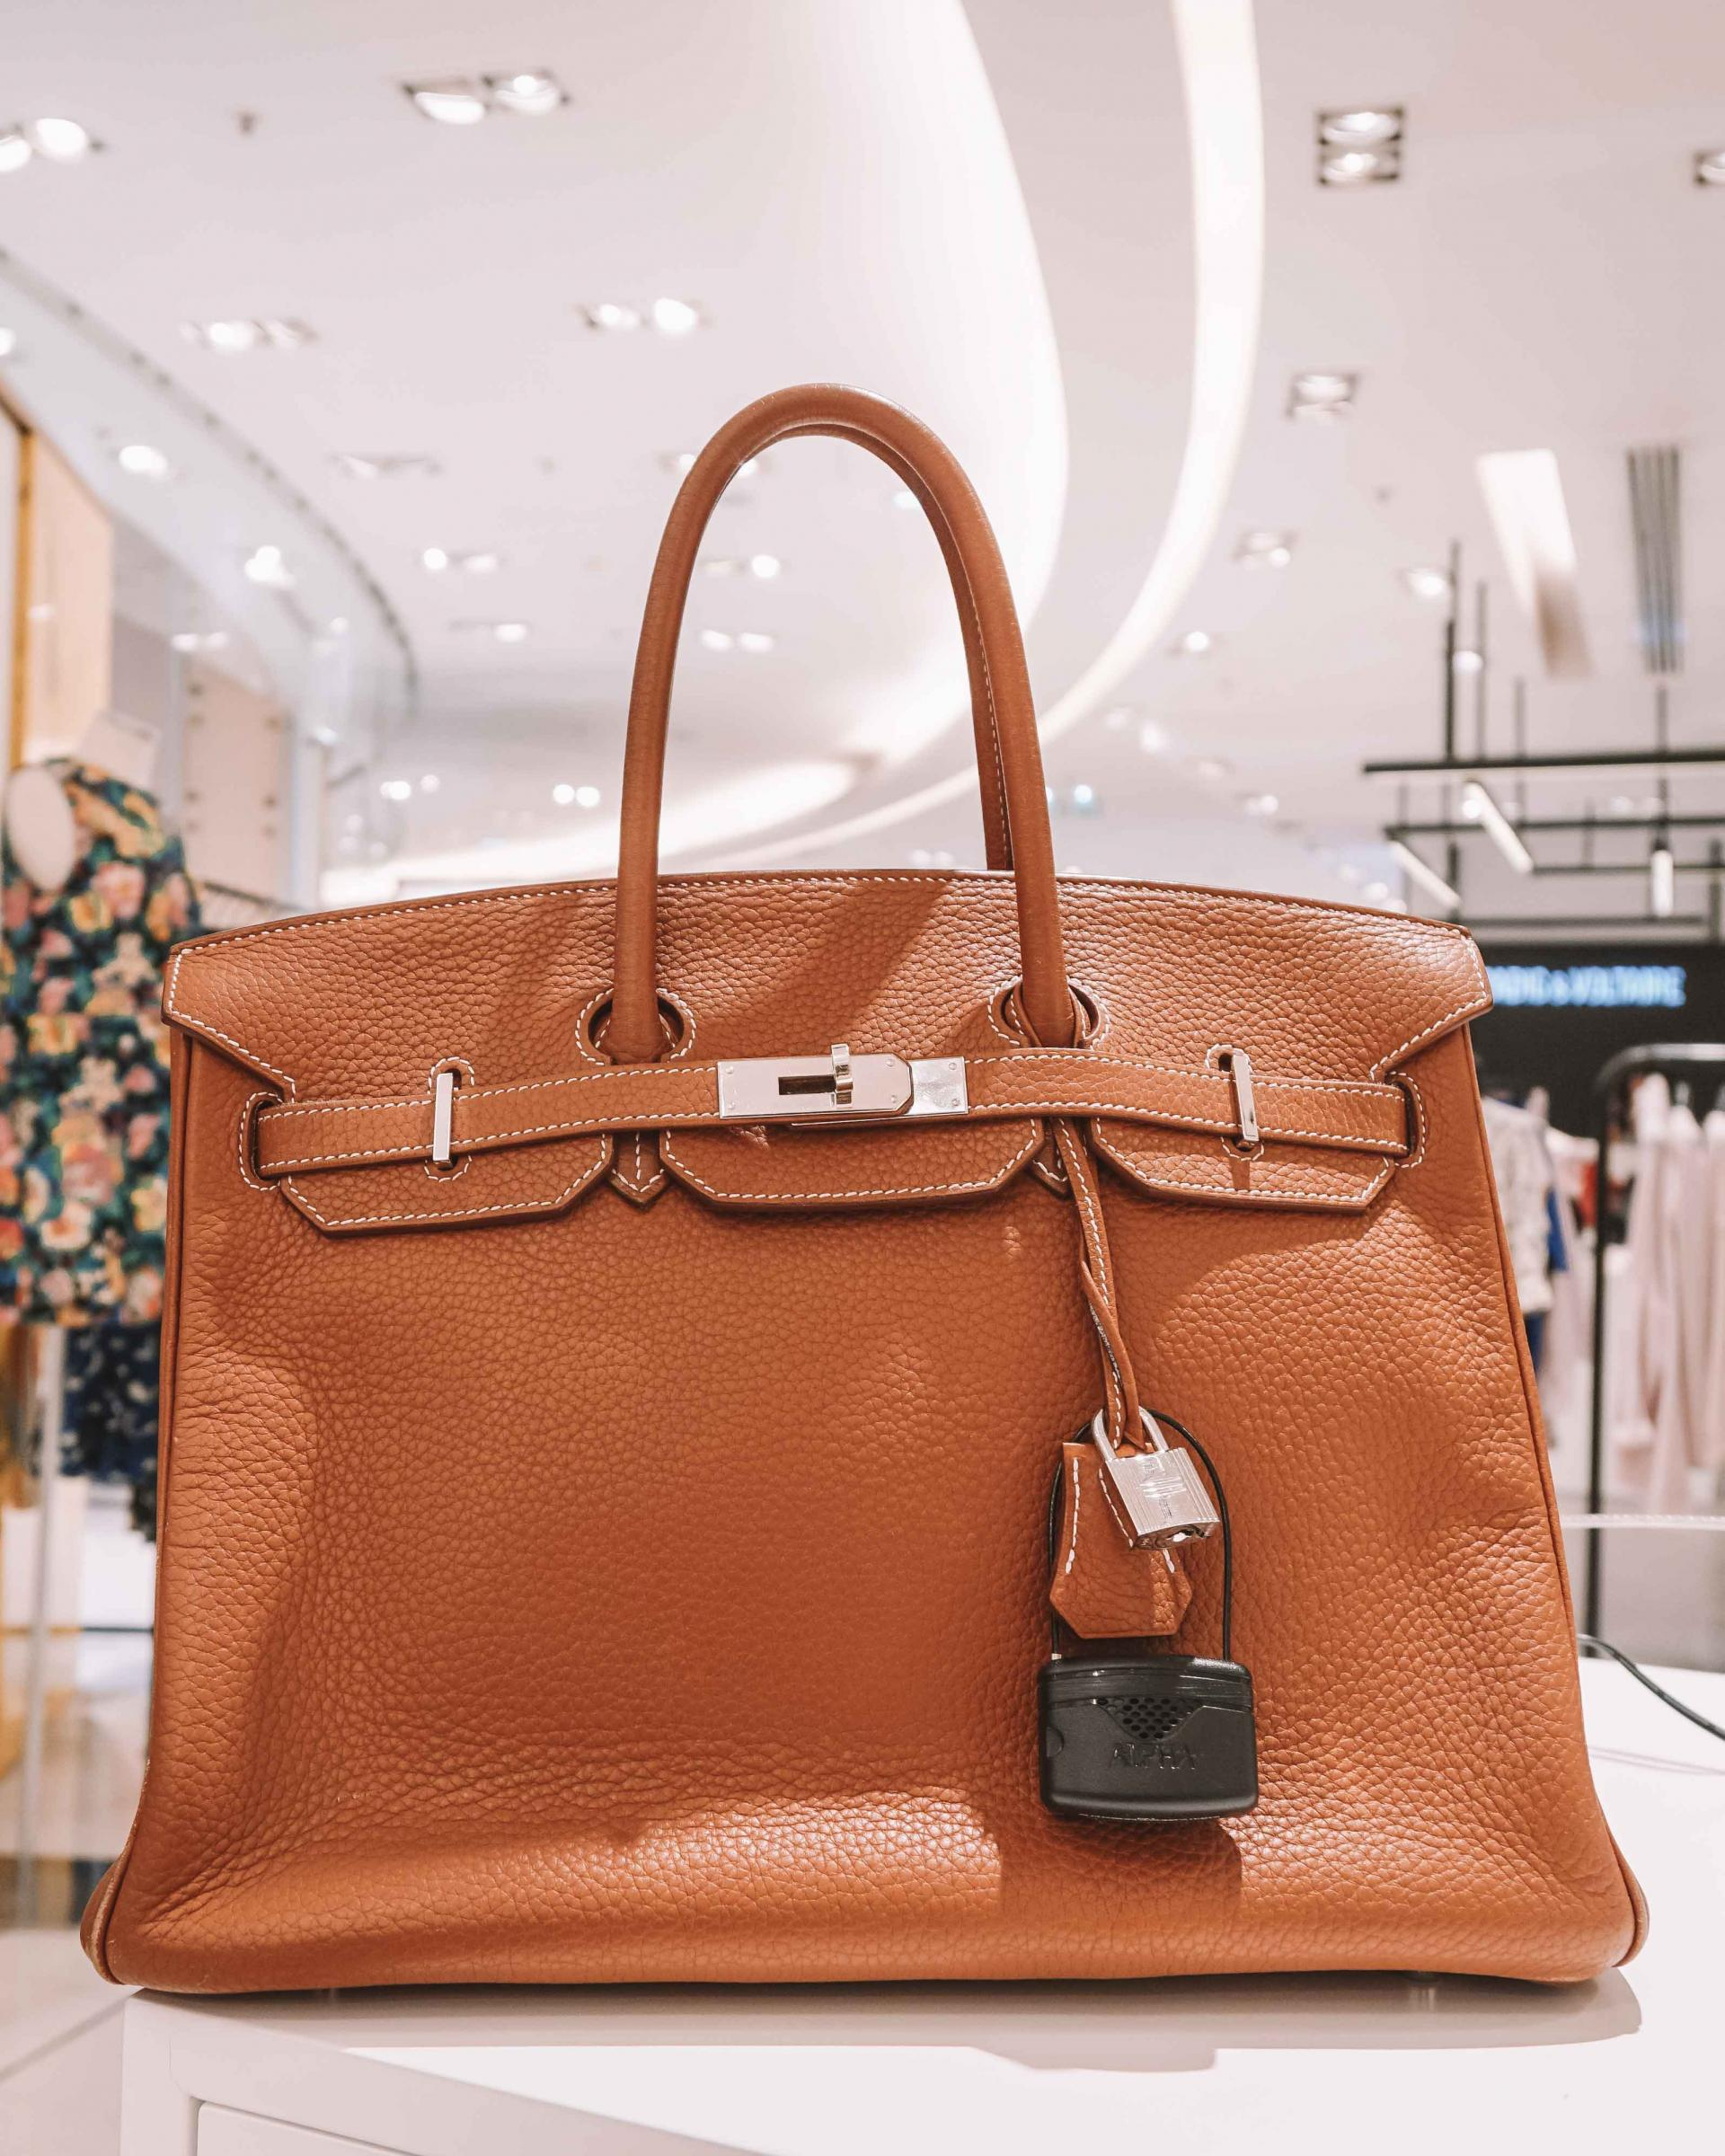 Are birkins cheaper in Paris